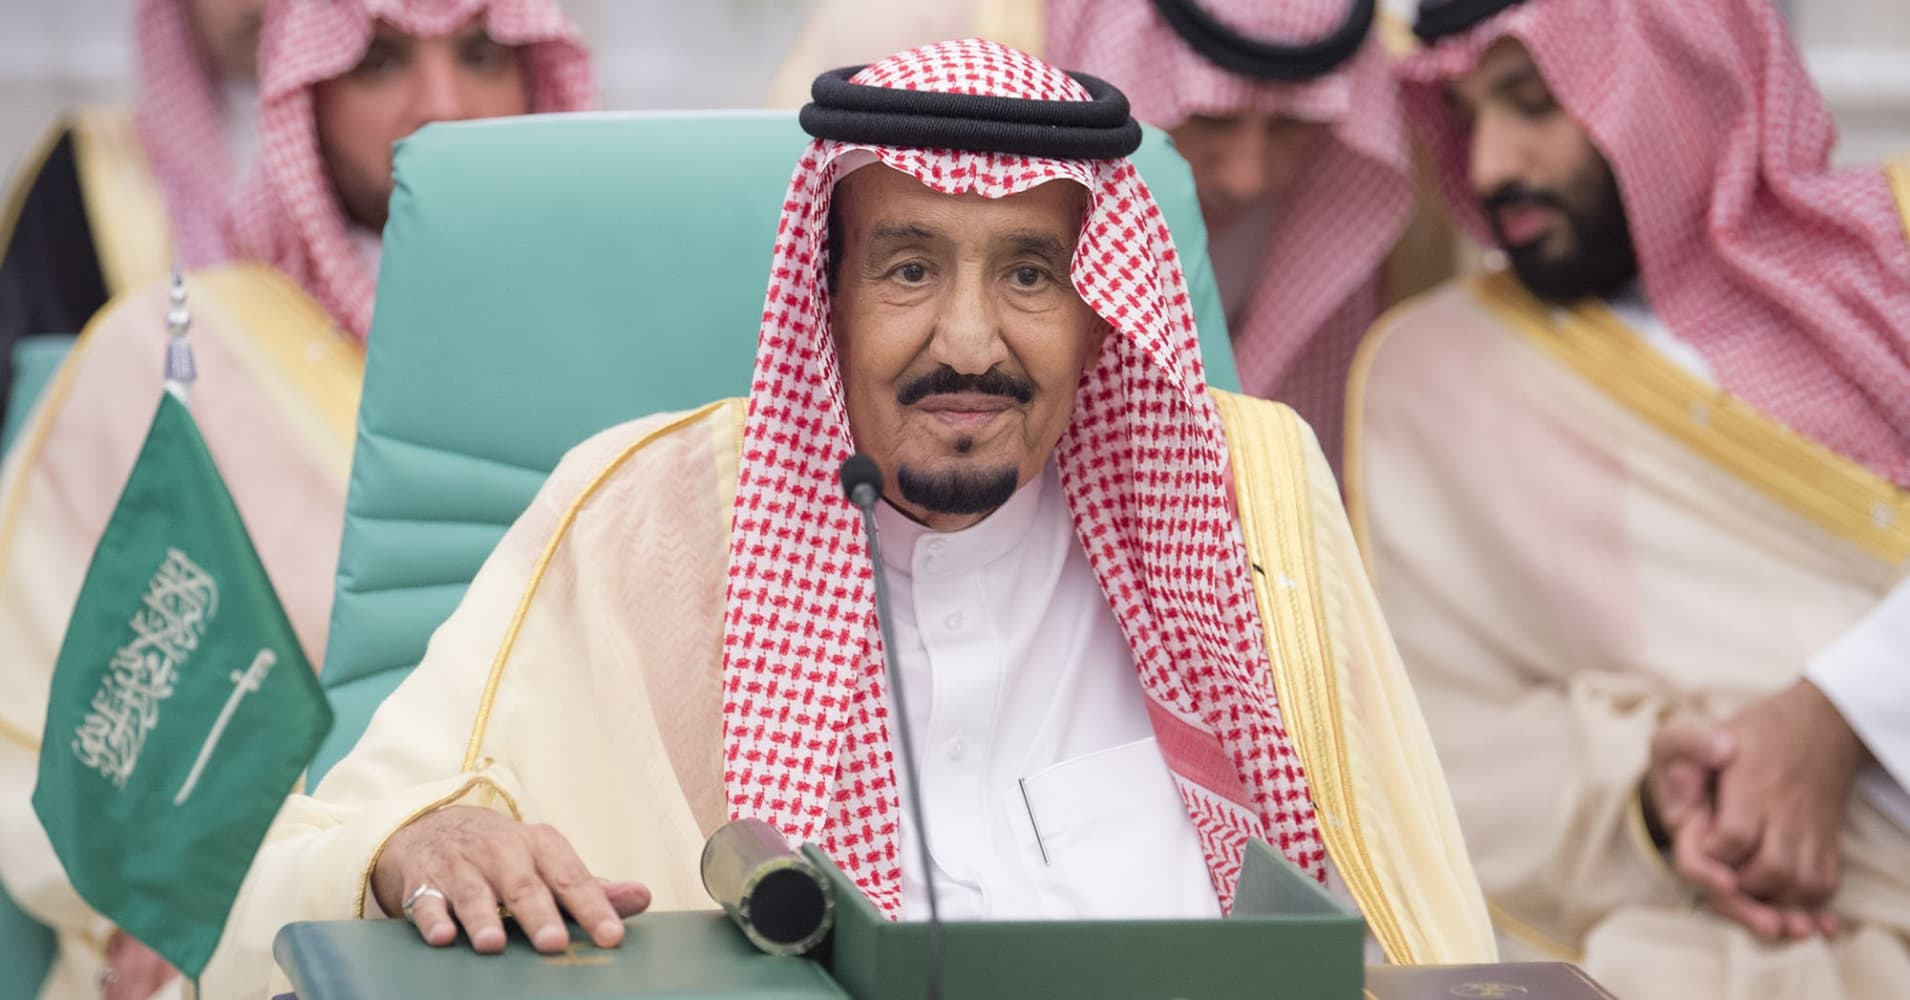 Saudi Arabia beheads 37 for terrorism crimes, most of them minority Shiites